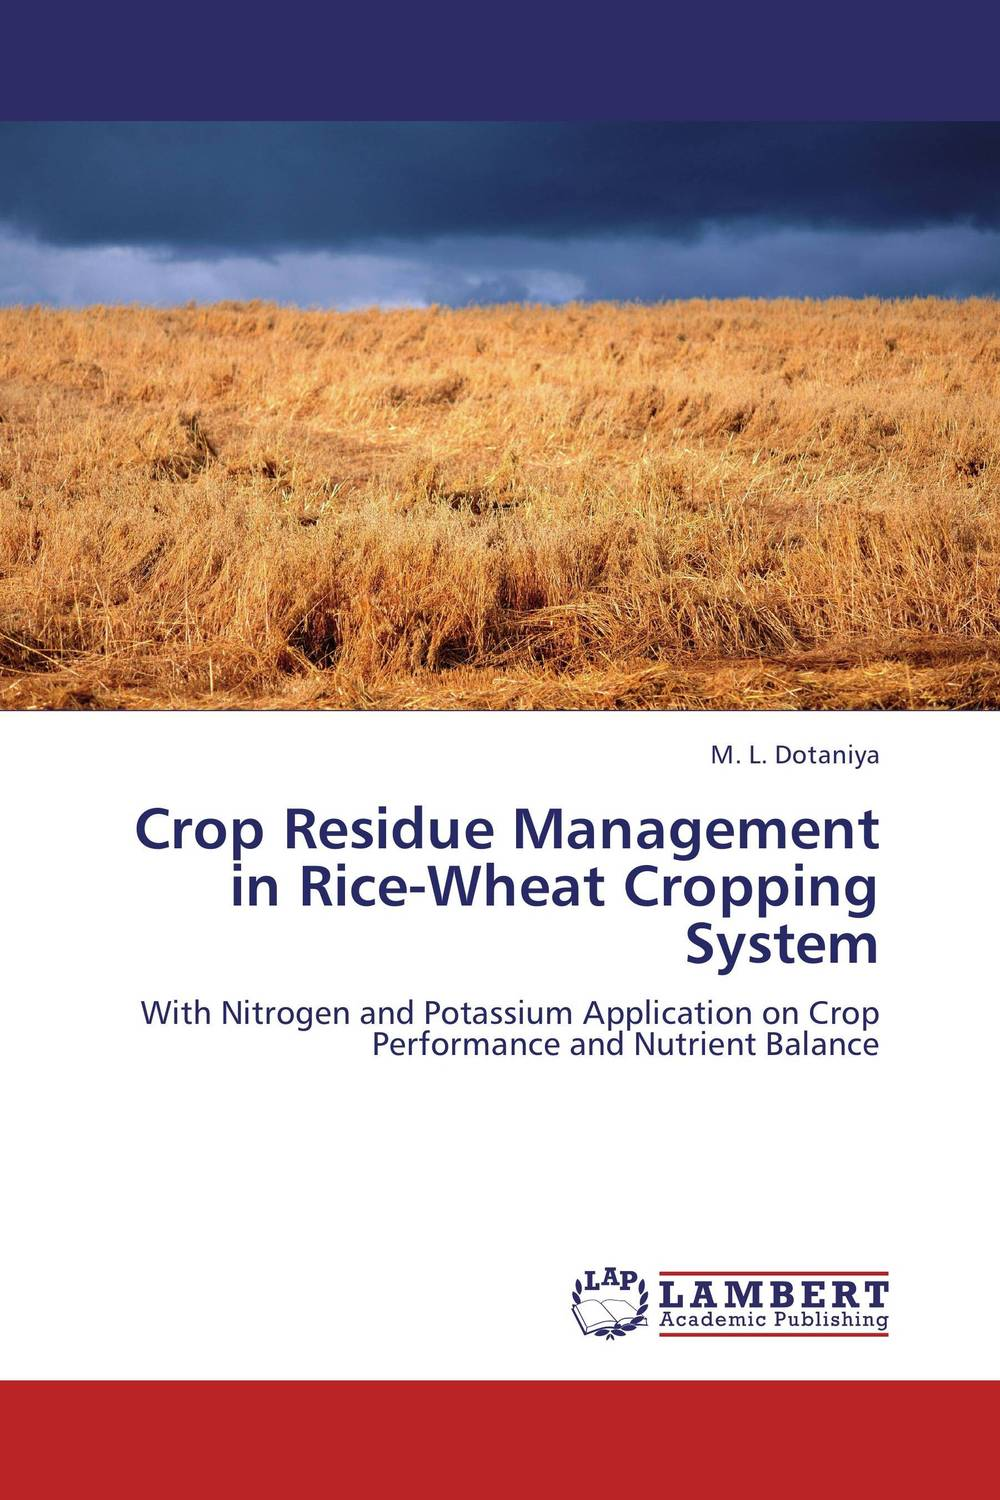 Crop Residue Management in Rice-Wheat Cropping System k r k naidu a v ramana and r veeraraghavaiah common vetch management in rice fallow blackgram